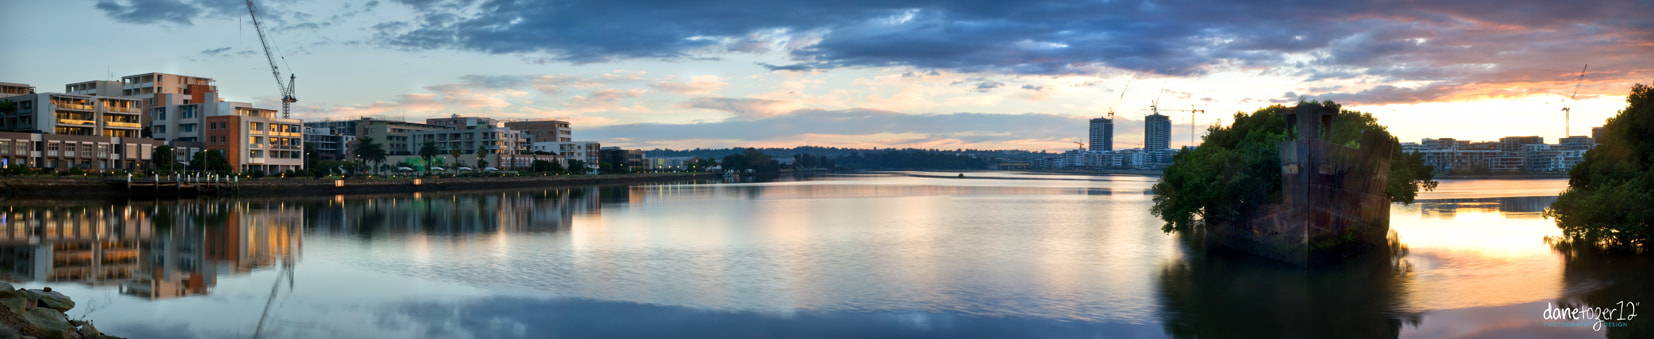 Photograph Homebush Waterfront and shipwreck by Dane Tozer on 500px